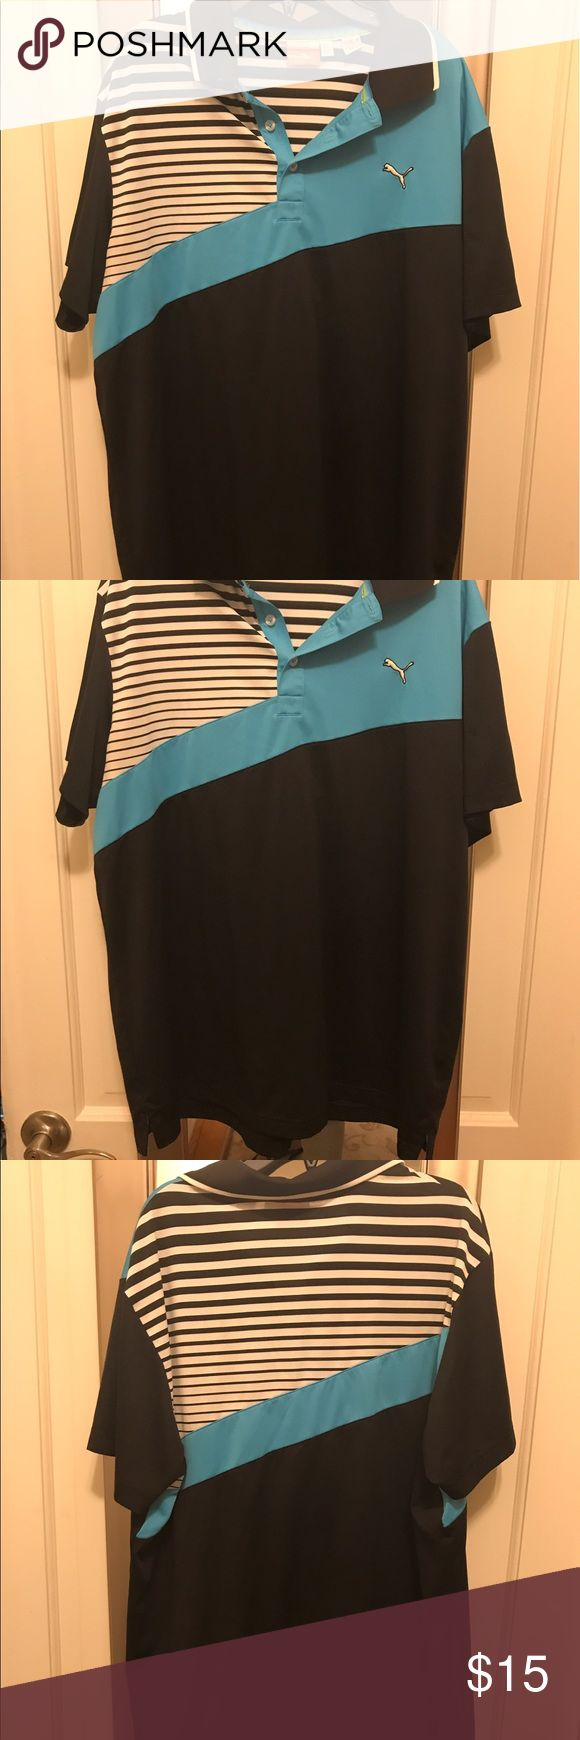 Puma golf polo shirt Sz L Puma golf polo shirt Sz L, great pre owned condition! Puma Shirts Polos